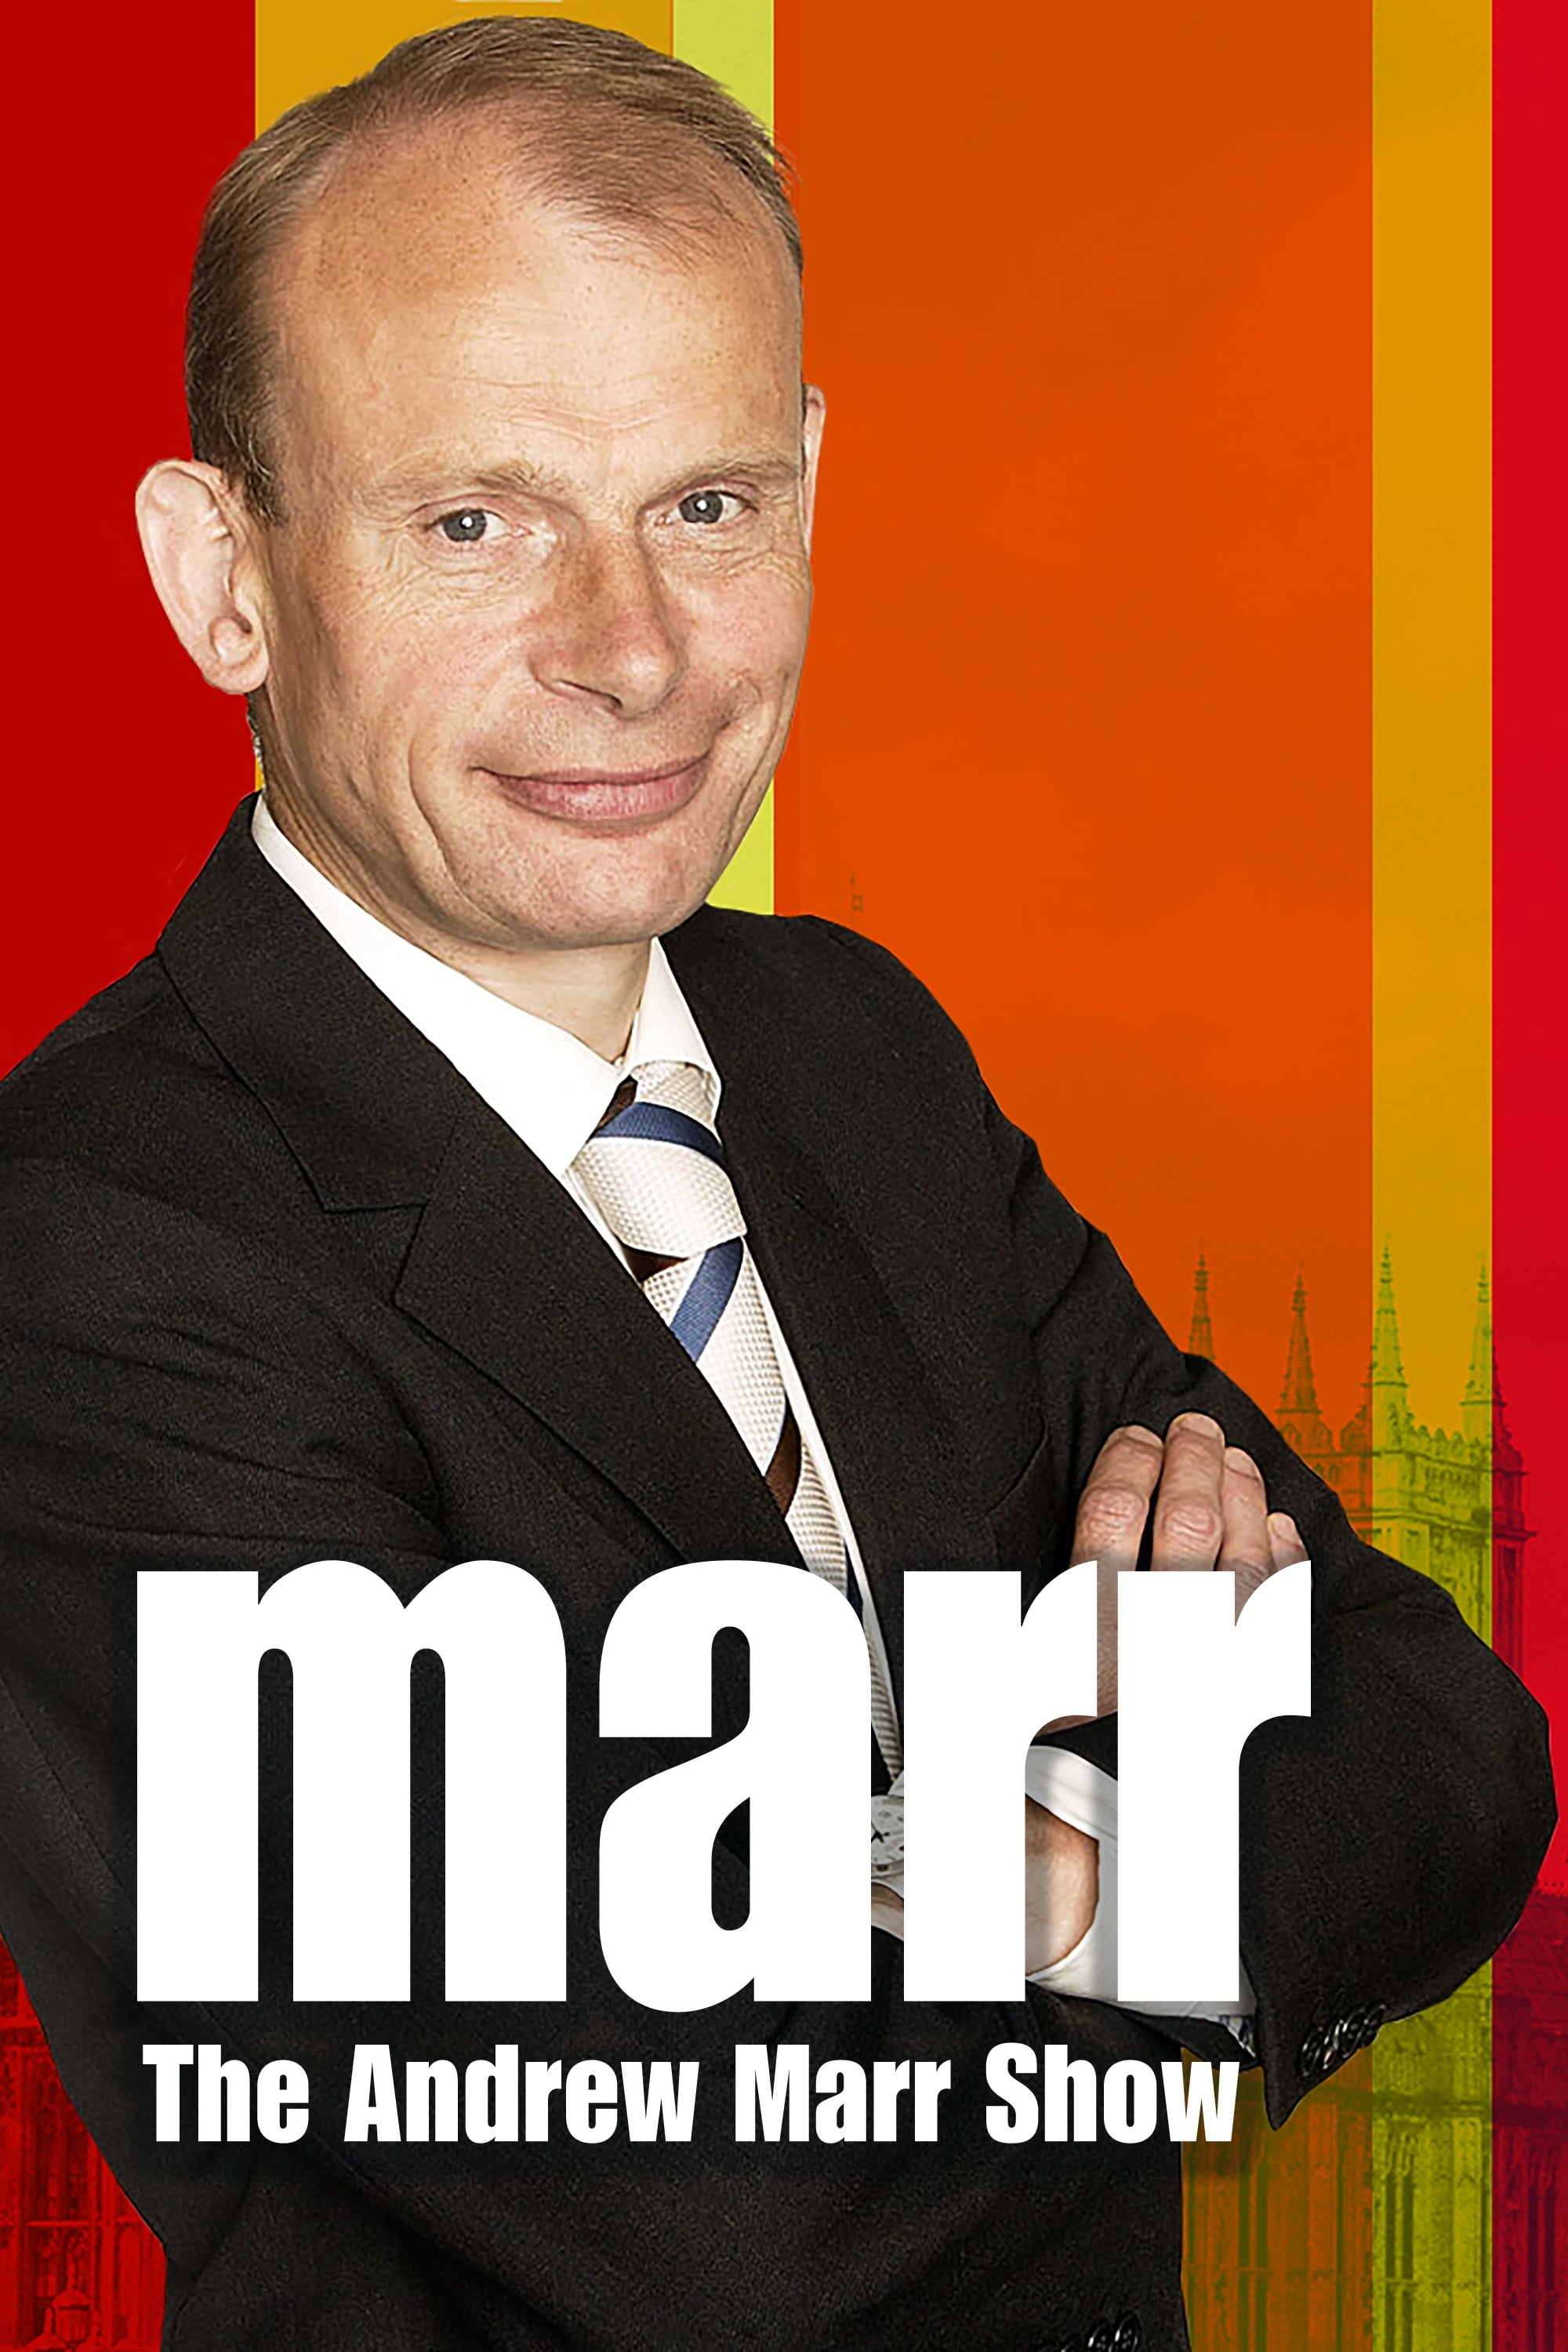 The Andrew Marr Show (1970)